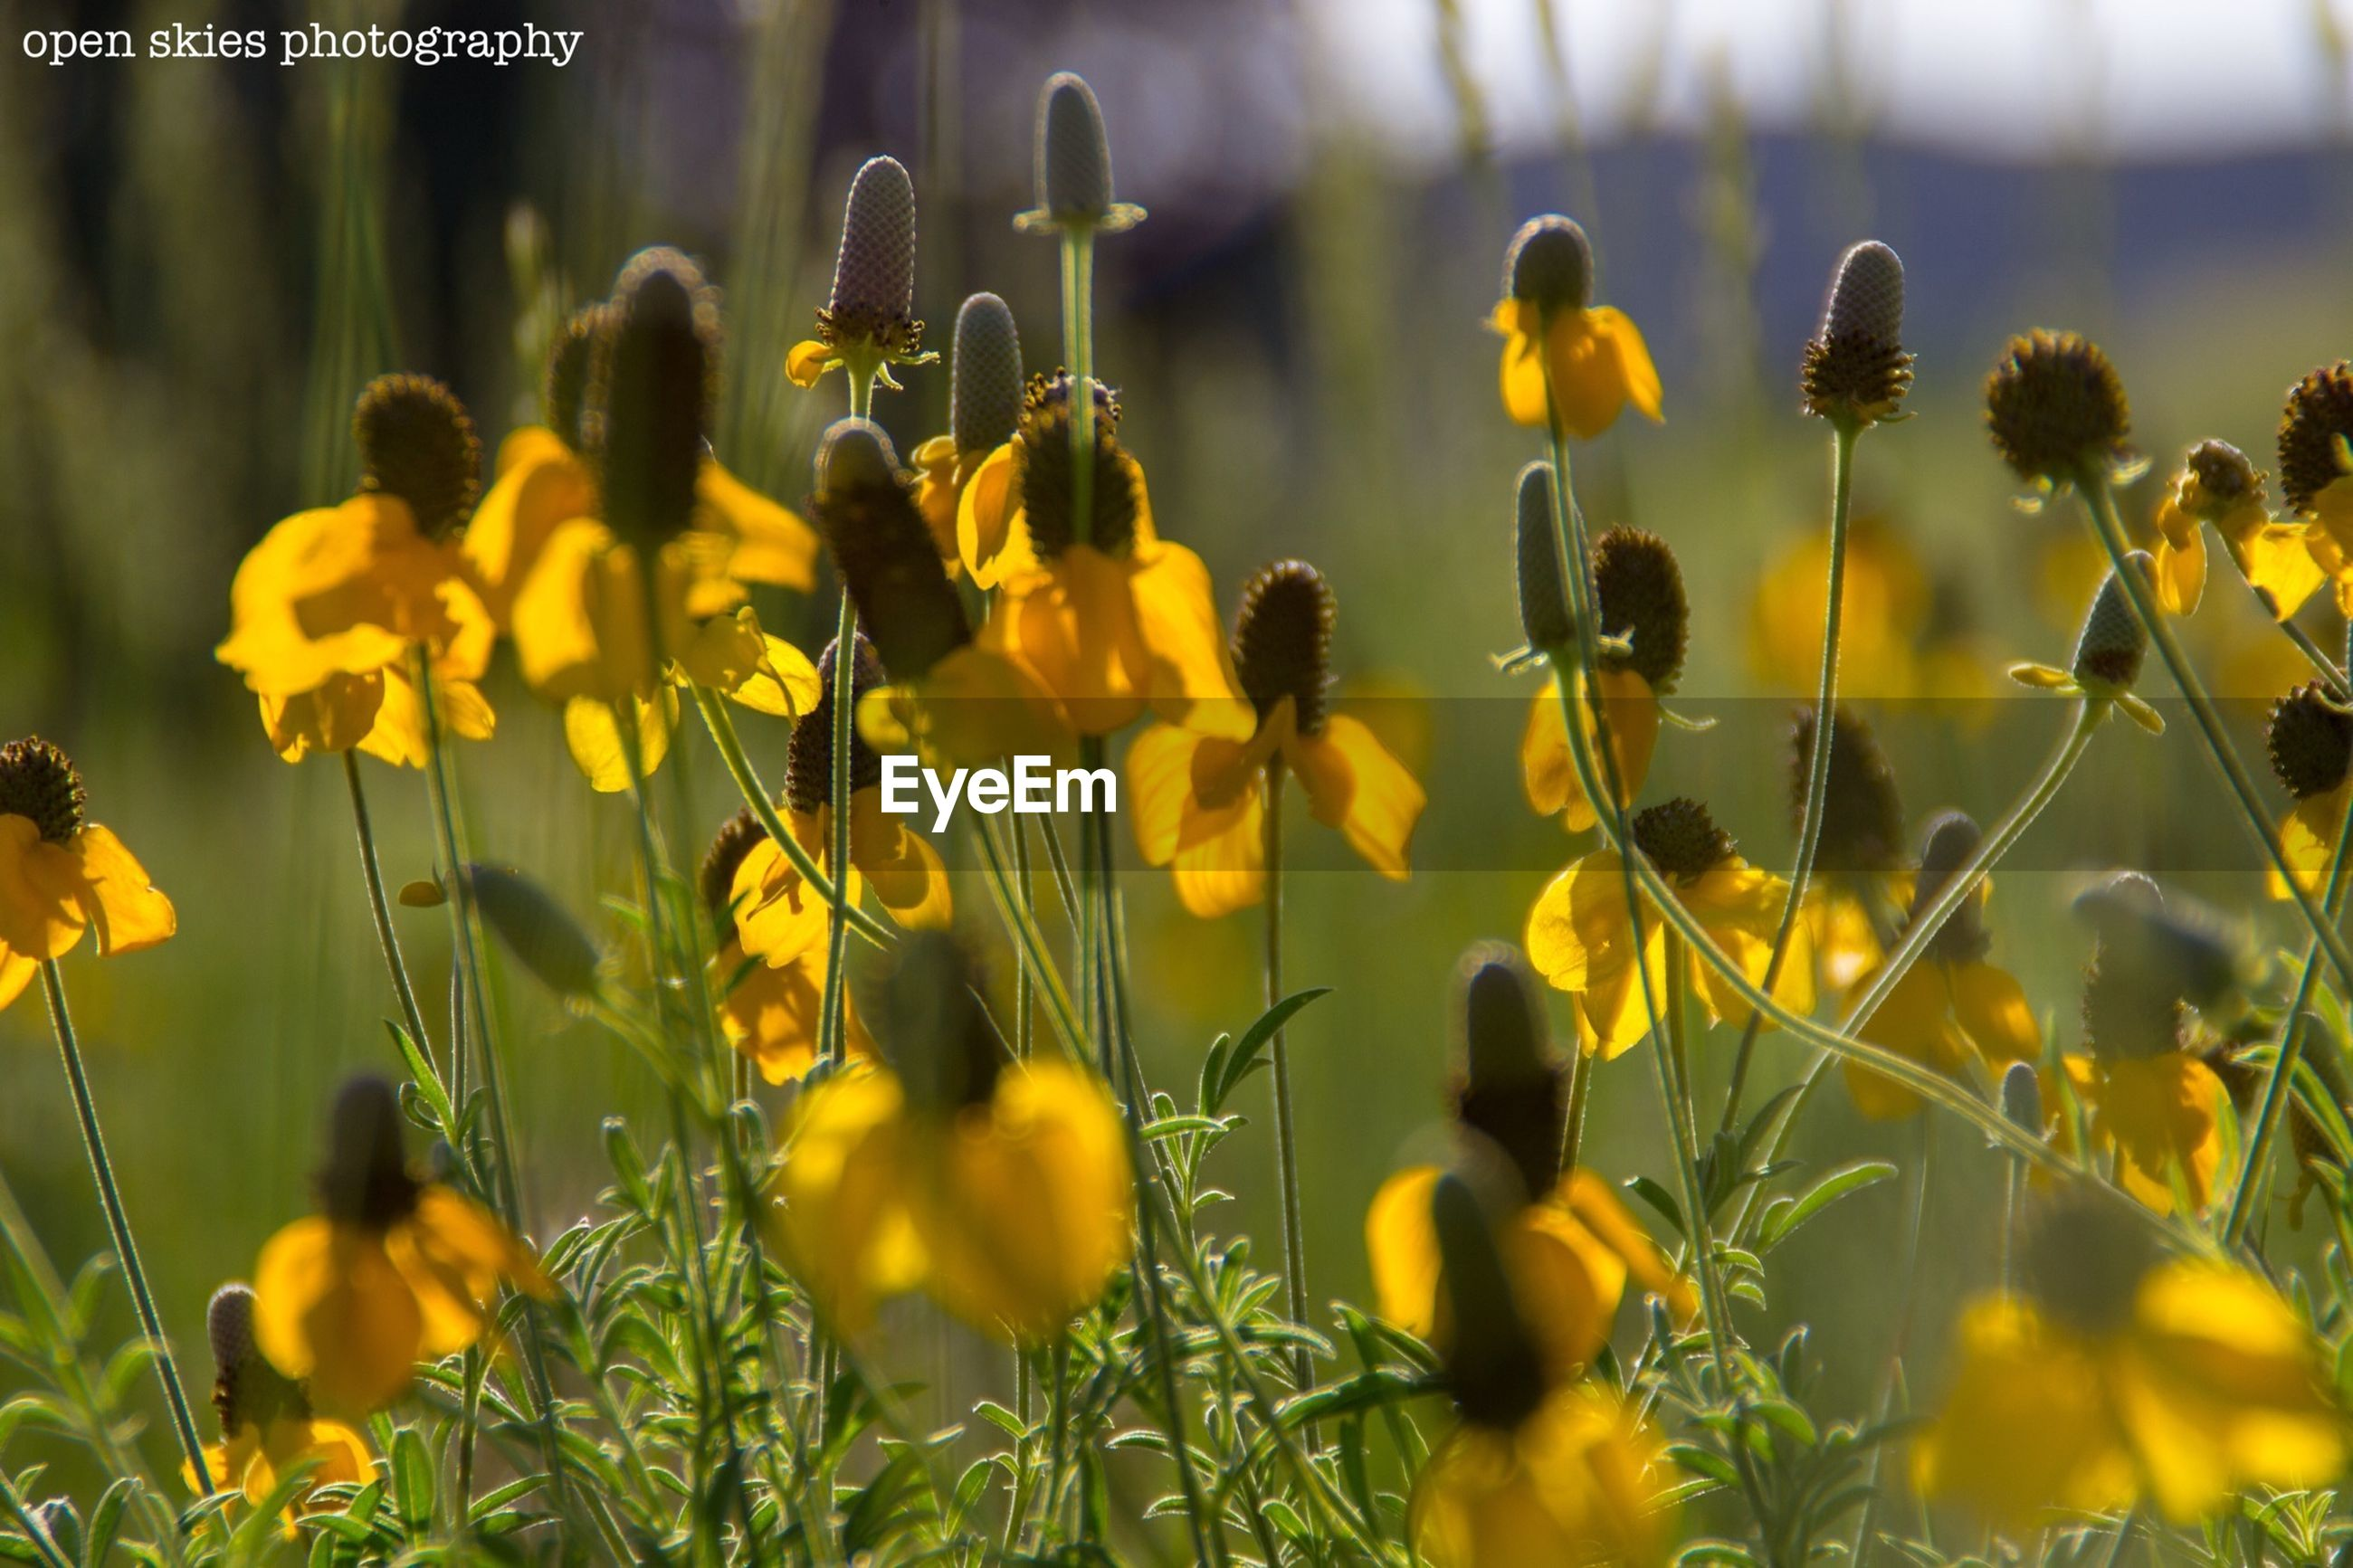 flower, freshness, yellow, growth, fragility, beauty in nature, focus on foreground, nature, plant, petal, field, blooming, close-up, flower head, stem, selective focus, in bloom, outdoors, bud, agriculture